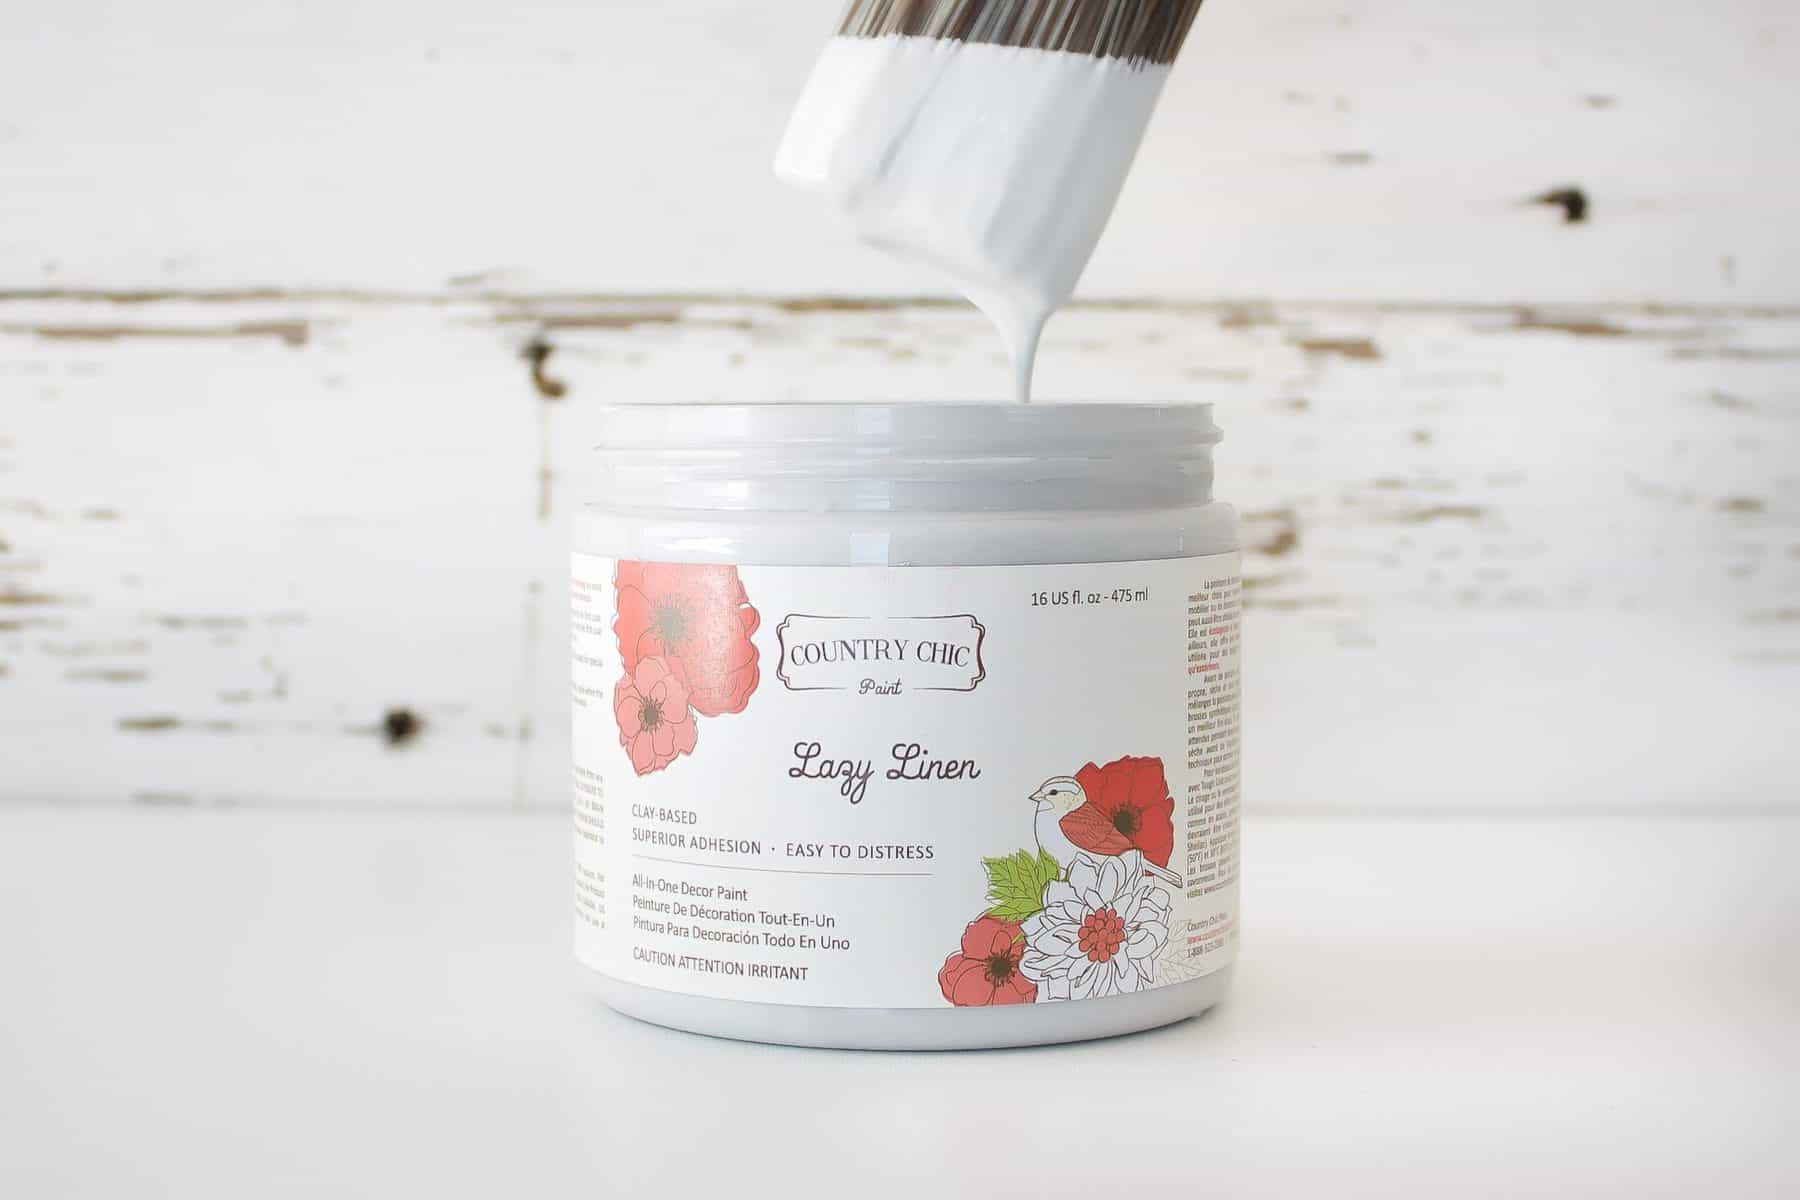 Country Chic Paint chalk style furniture paint in a light grey color called Lazy Linen